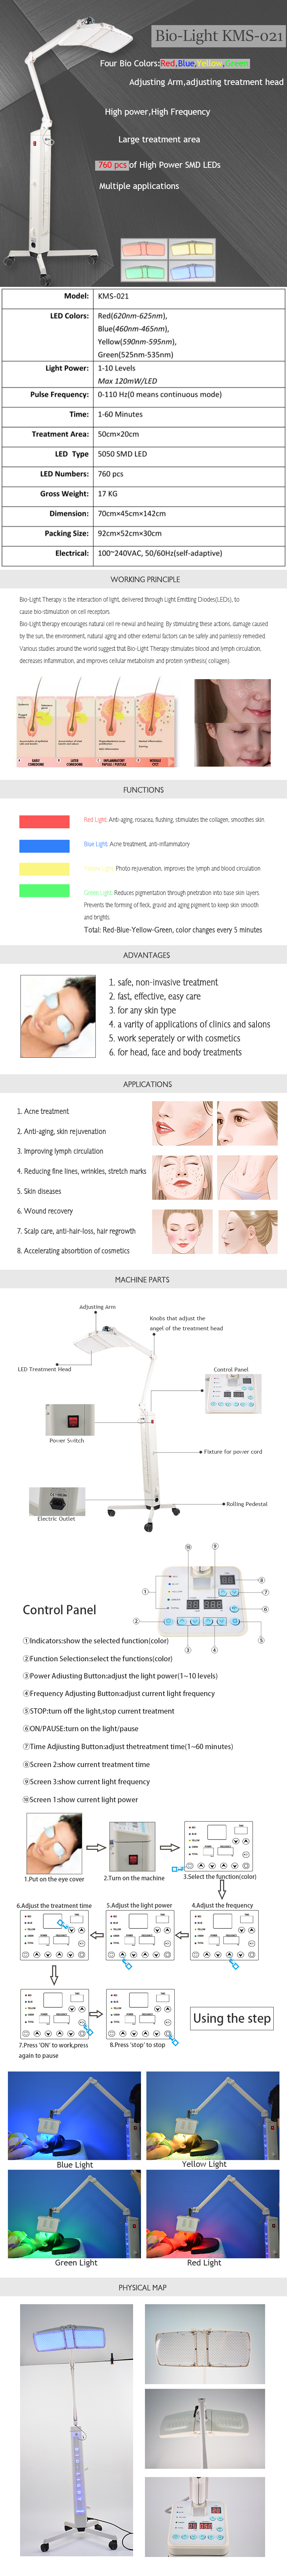 KMS021 LED Light Therapy Machine 4 light colors product details